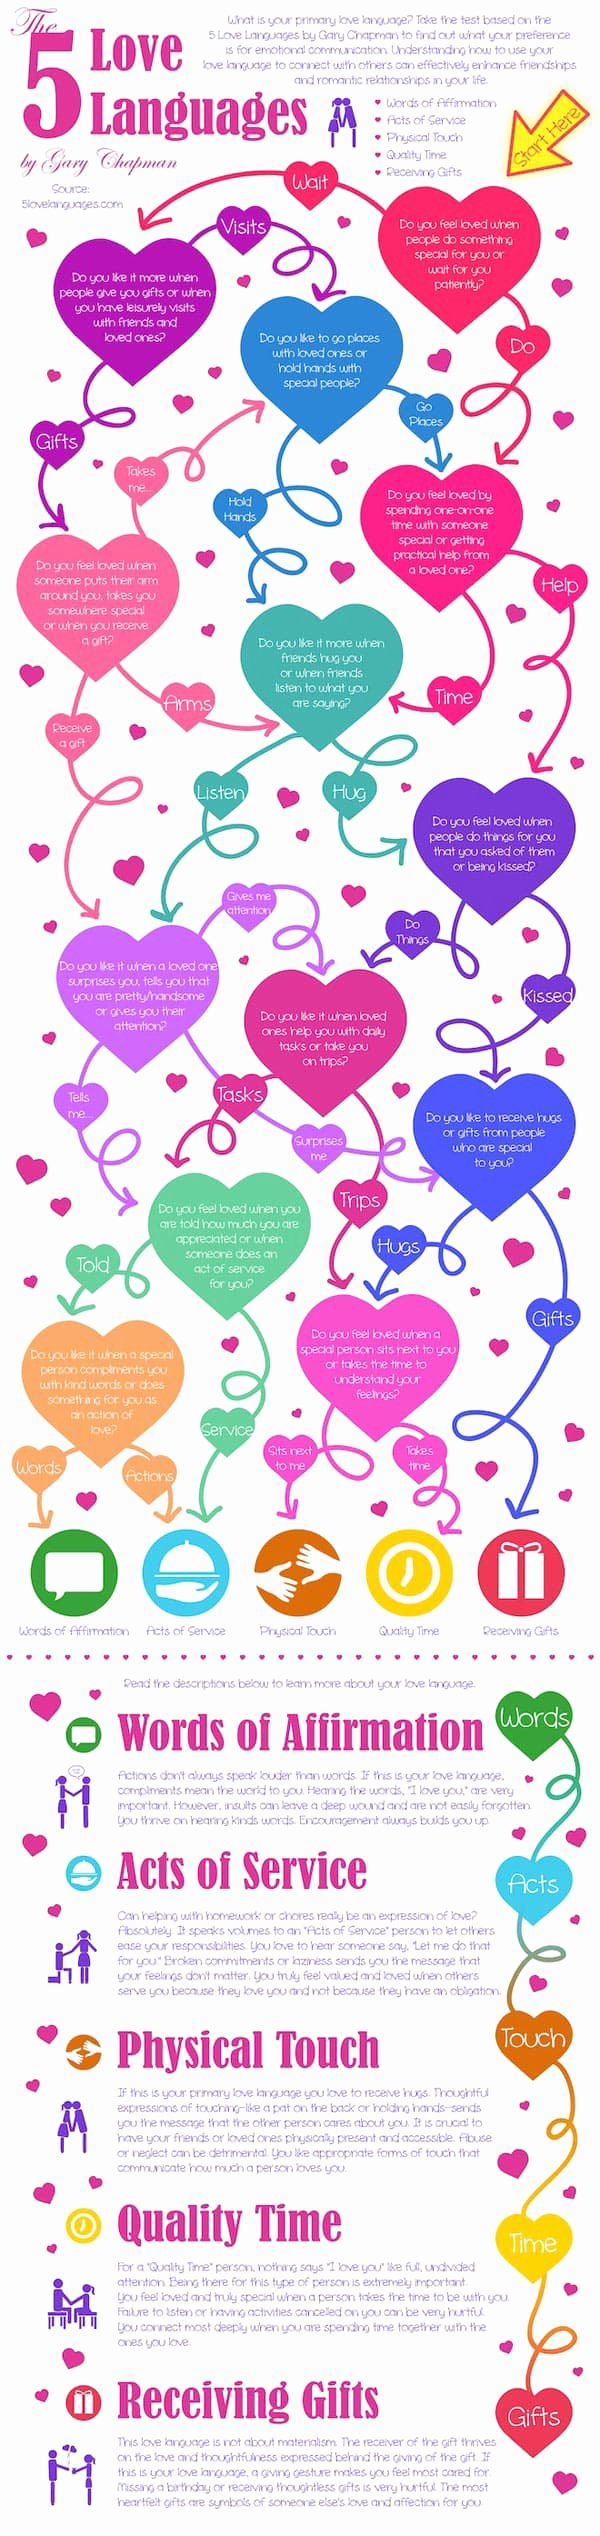 5 Love Languages Worksheet Inspirational How to Speak the Same Love Language as Your Partner